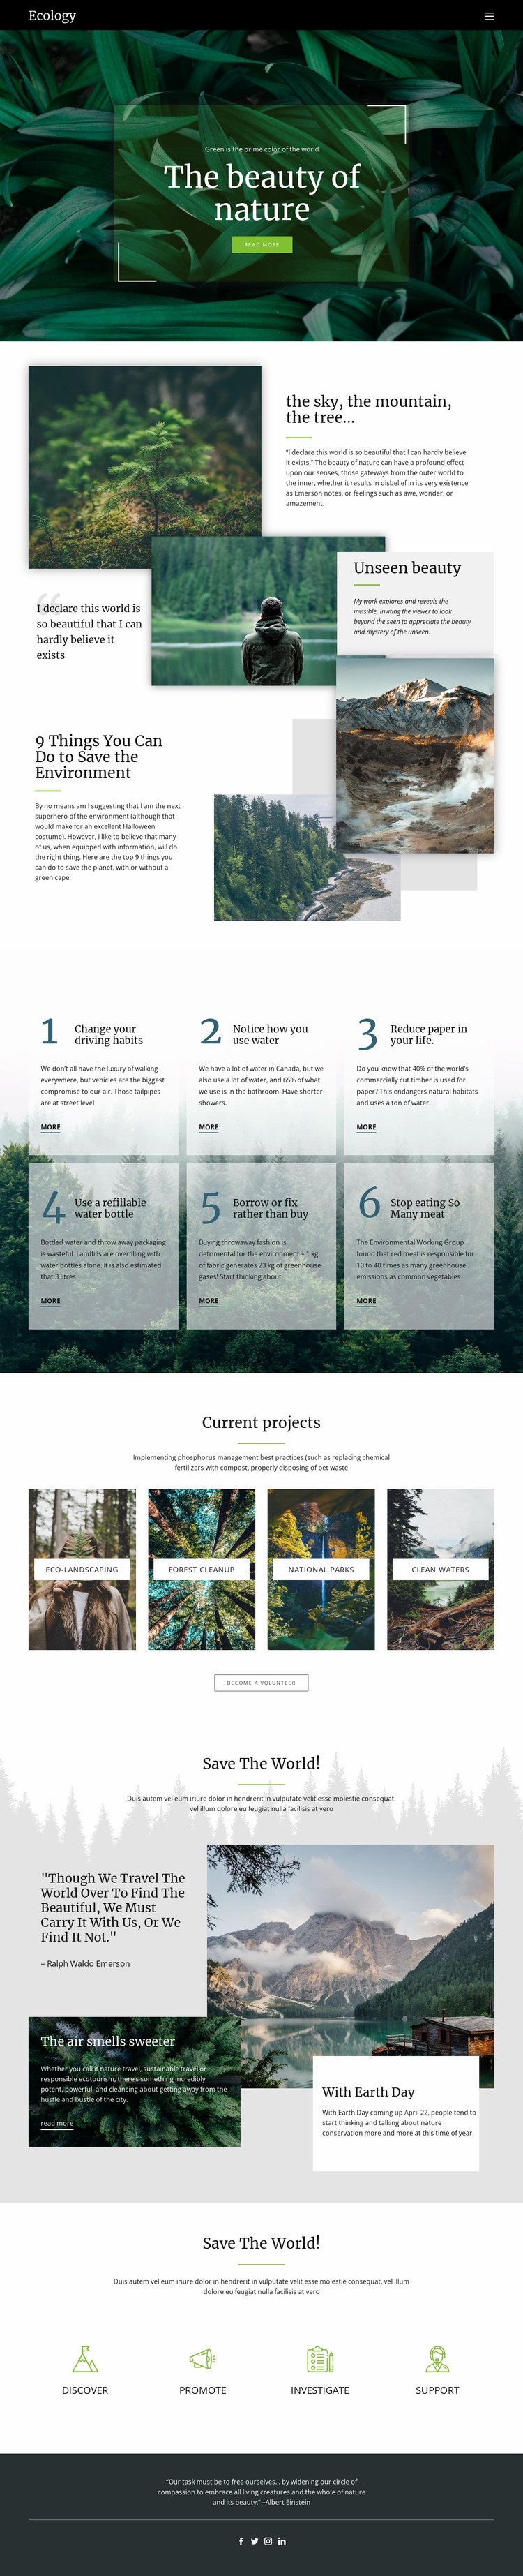 Skies and beauty of nature Website Mockup